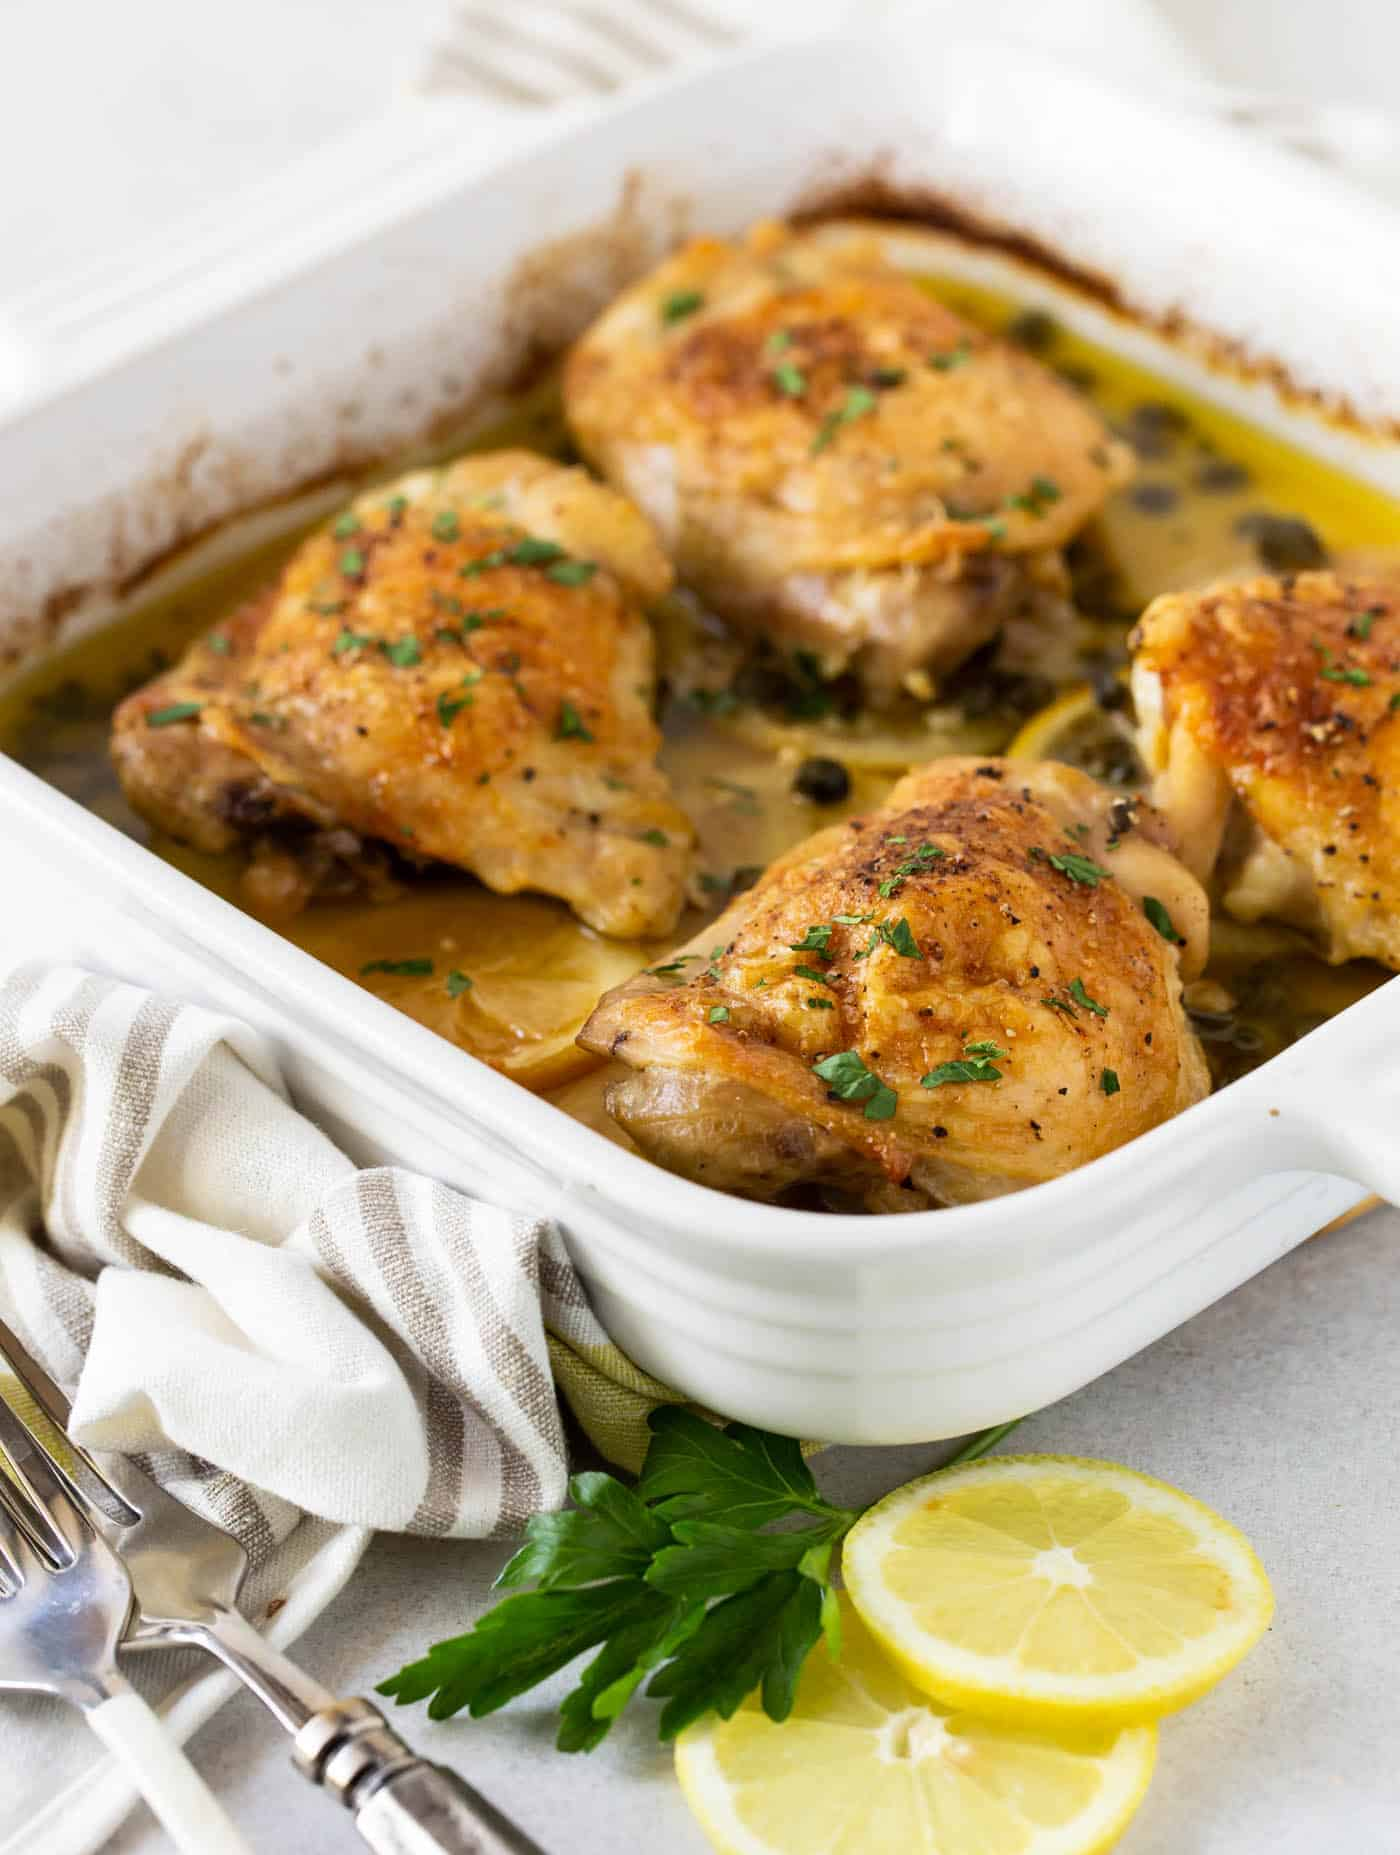 Chicken Thighs with Capers in a white baking dish with parsley and lemon slices for garnish.